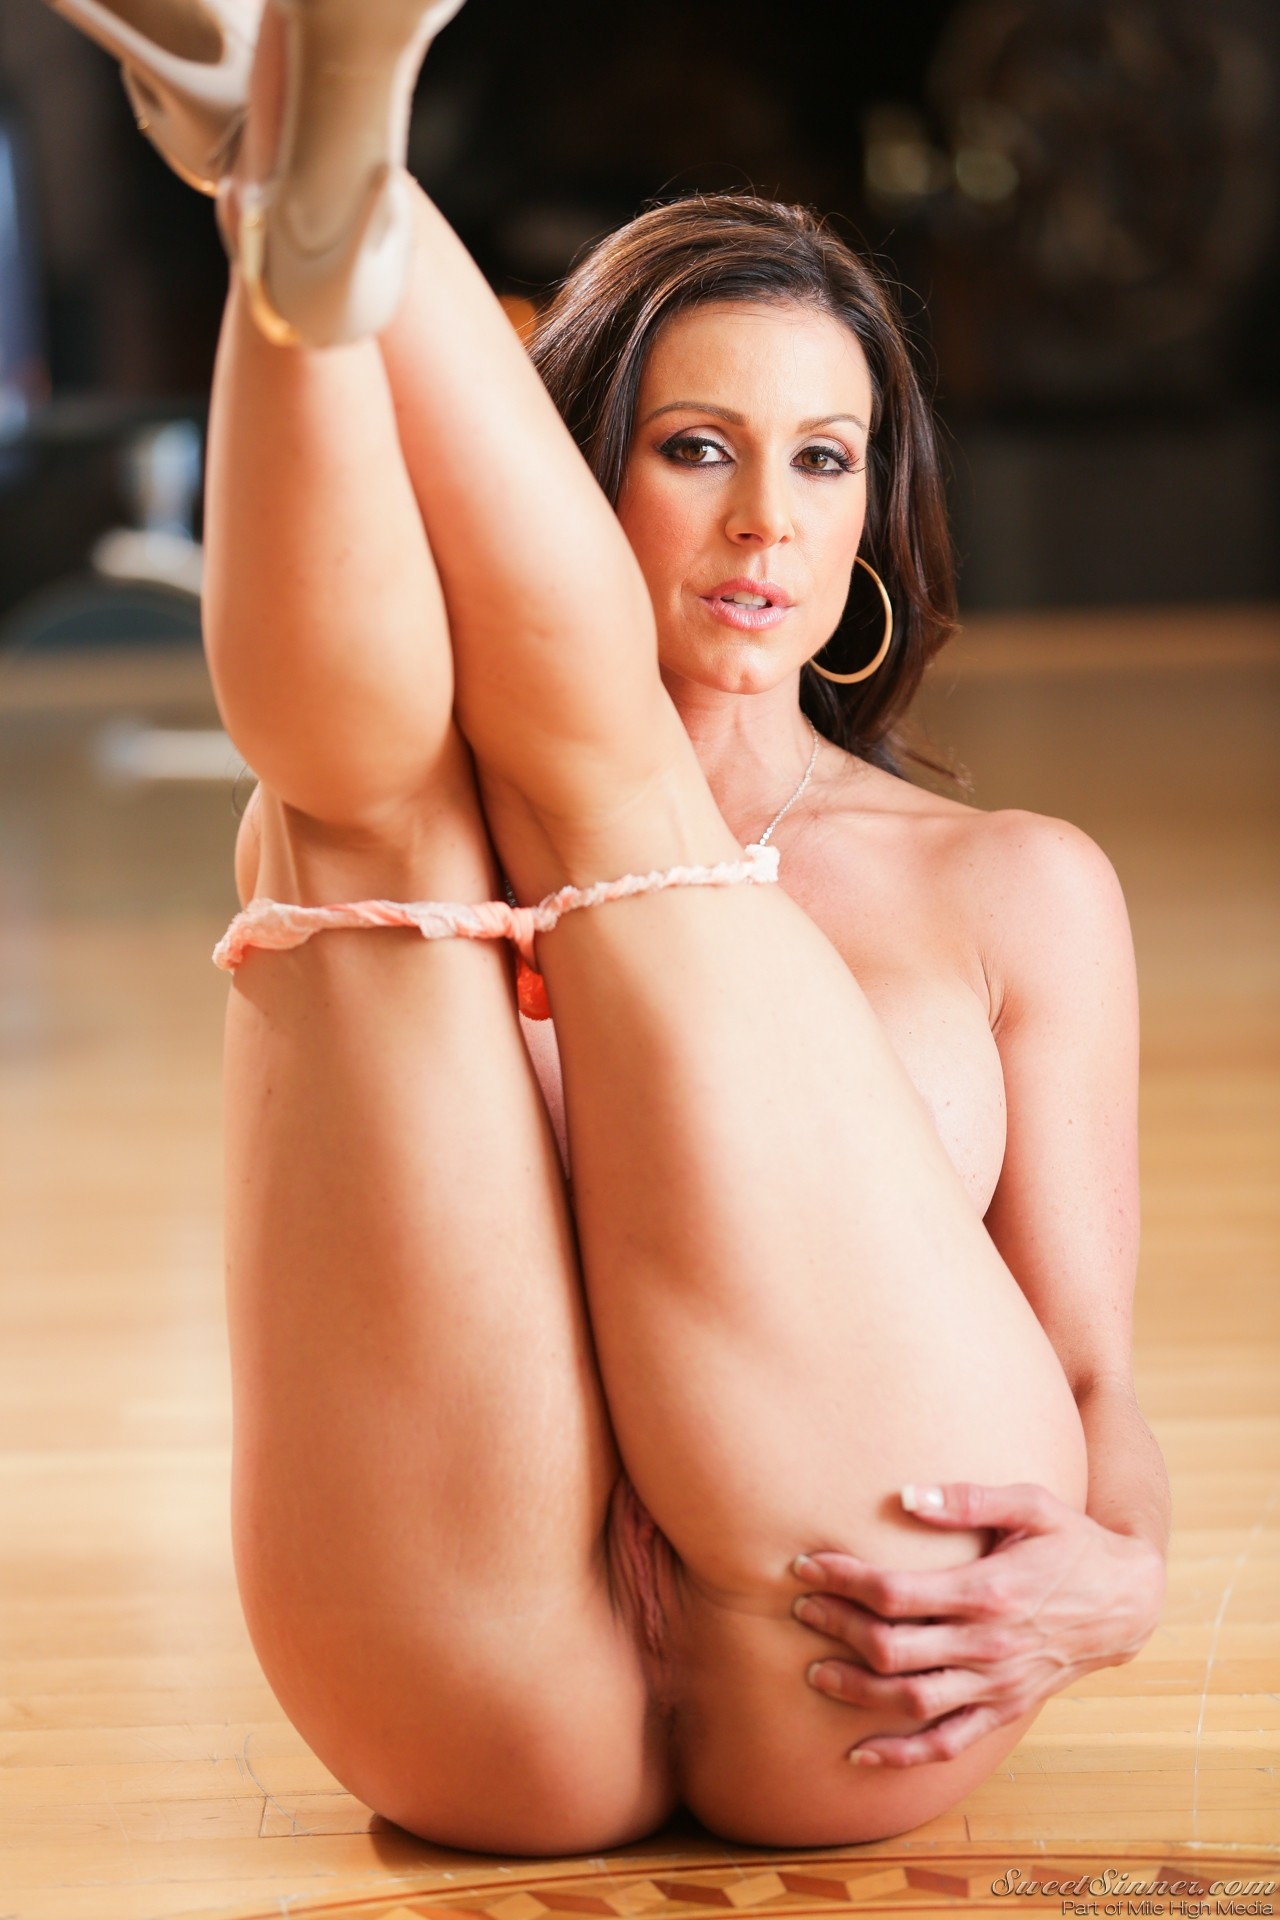 Kendra Lust - Mother Exchange 78146-1505